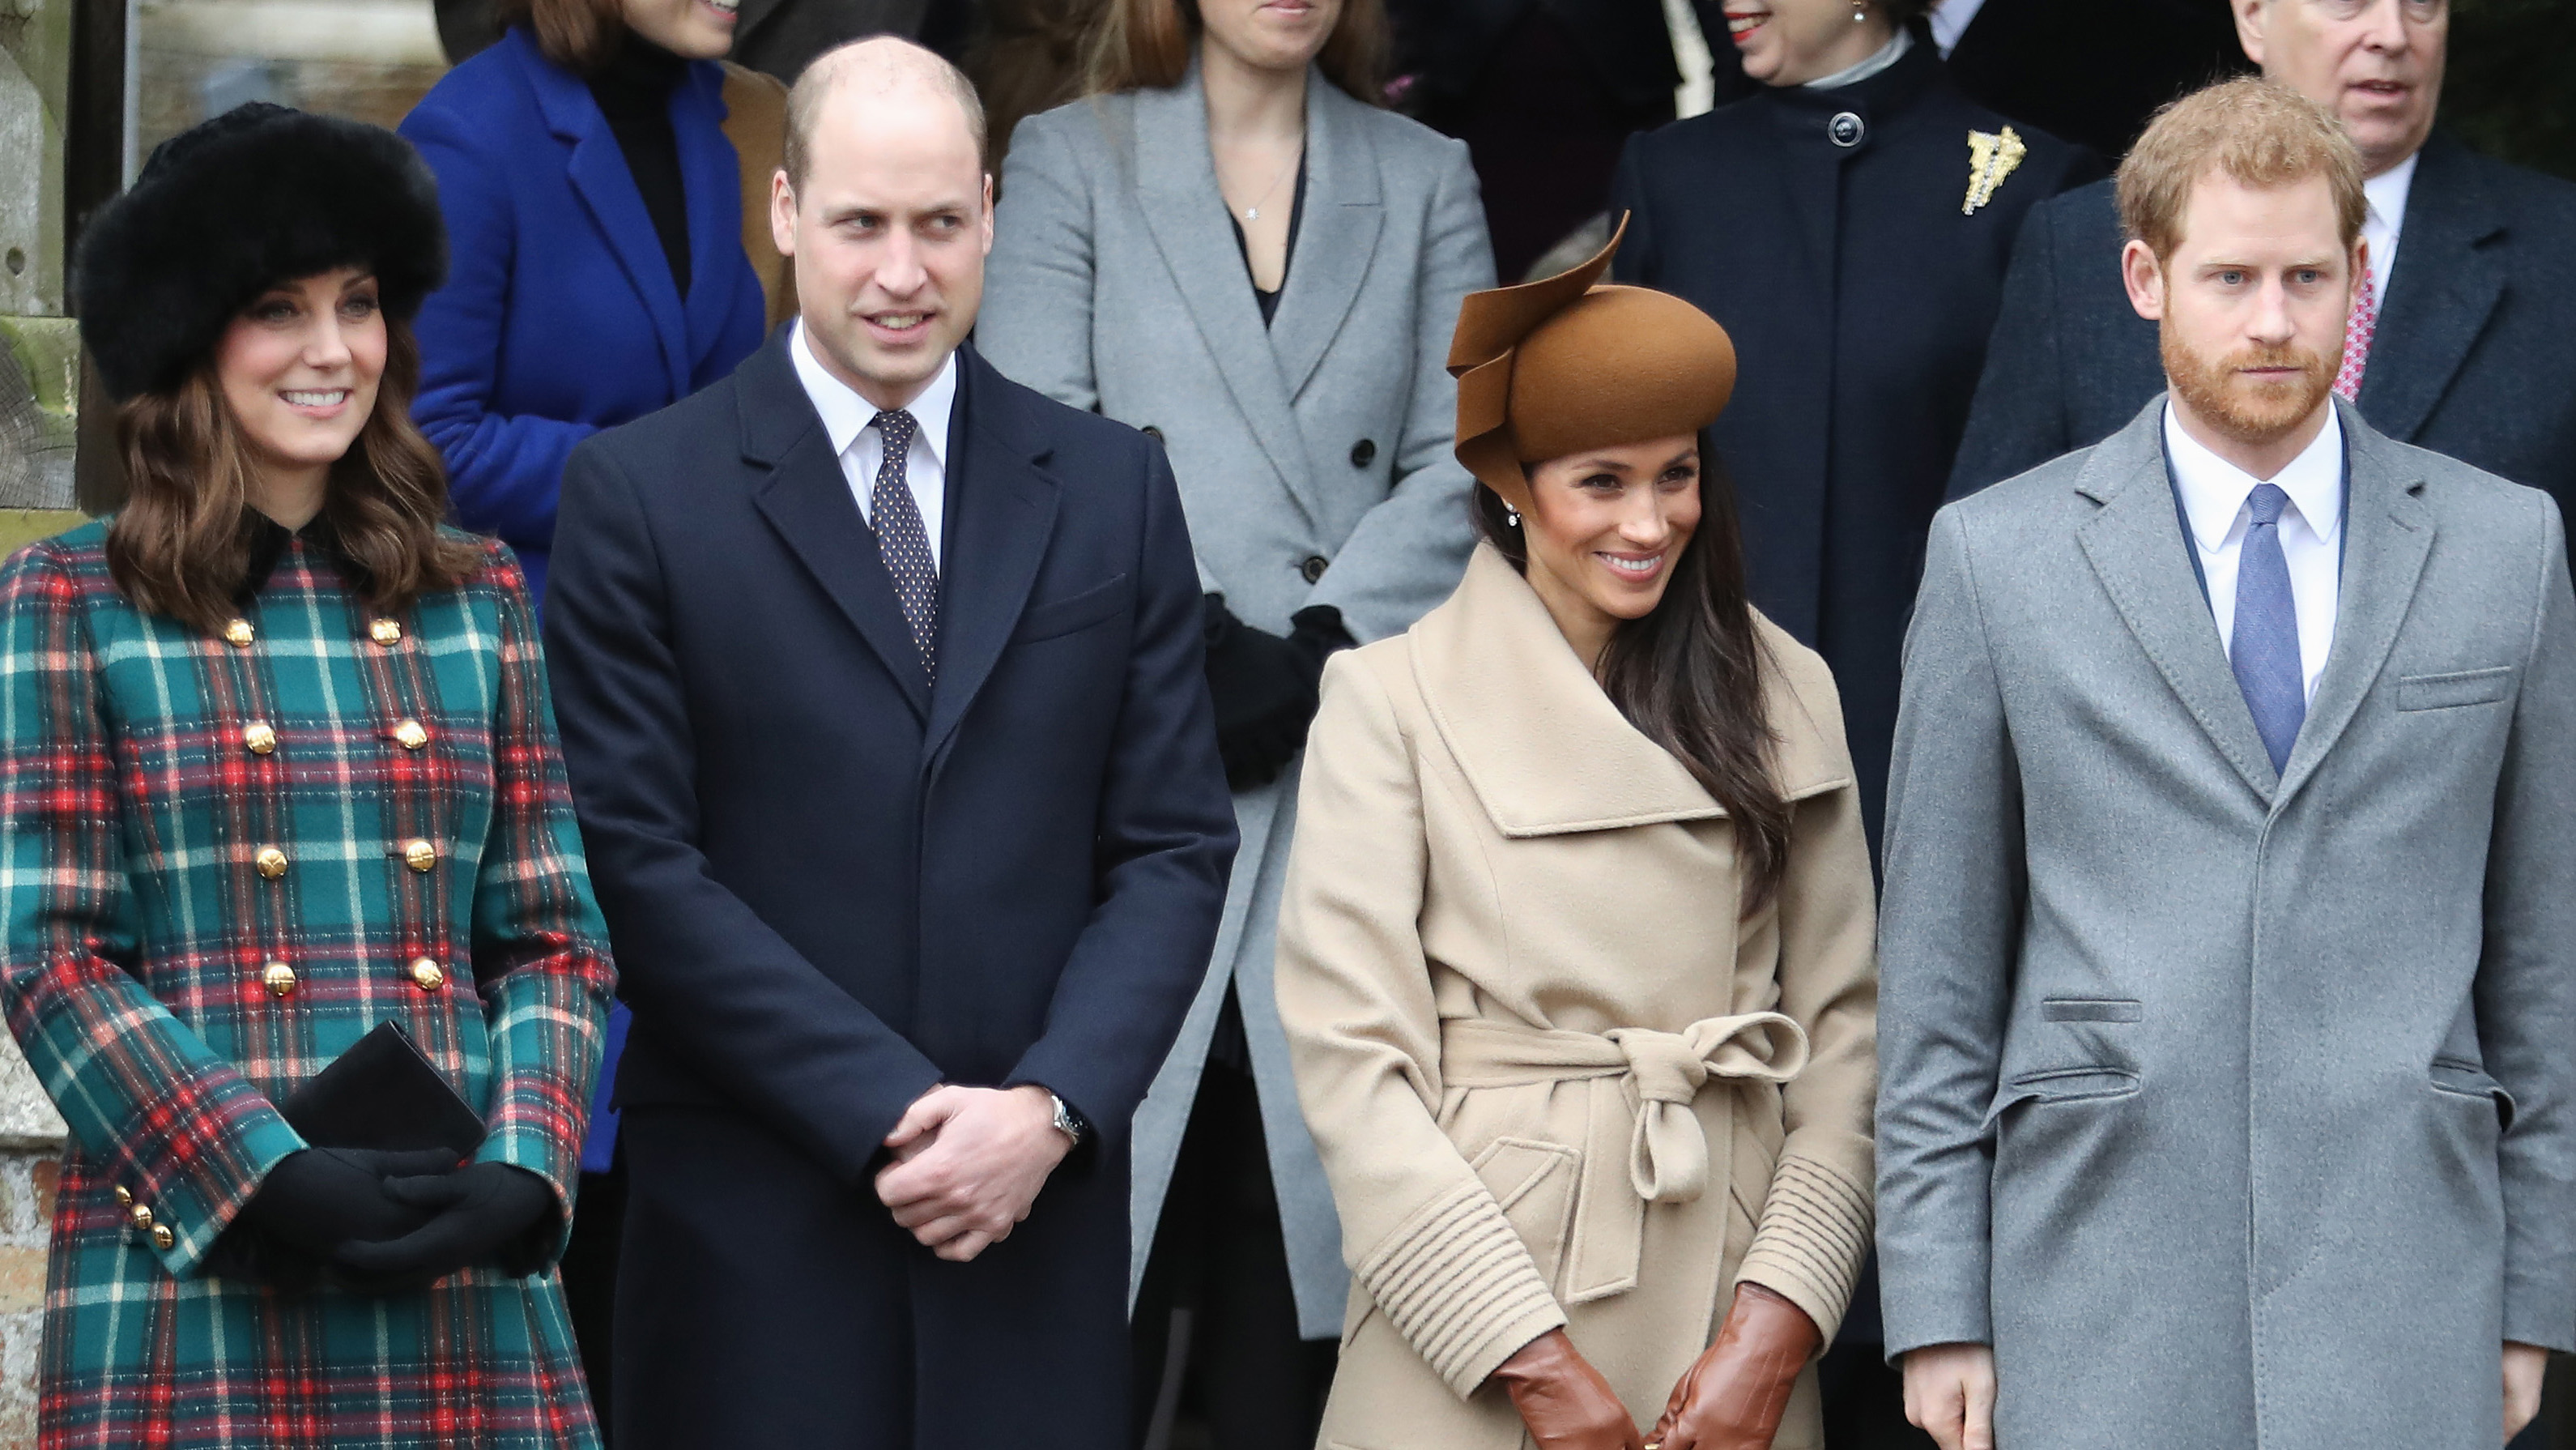 Royal Family Predictions 2018: Five Things We'd Love to See